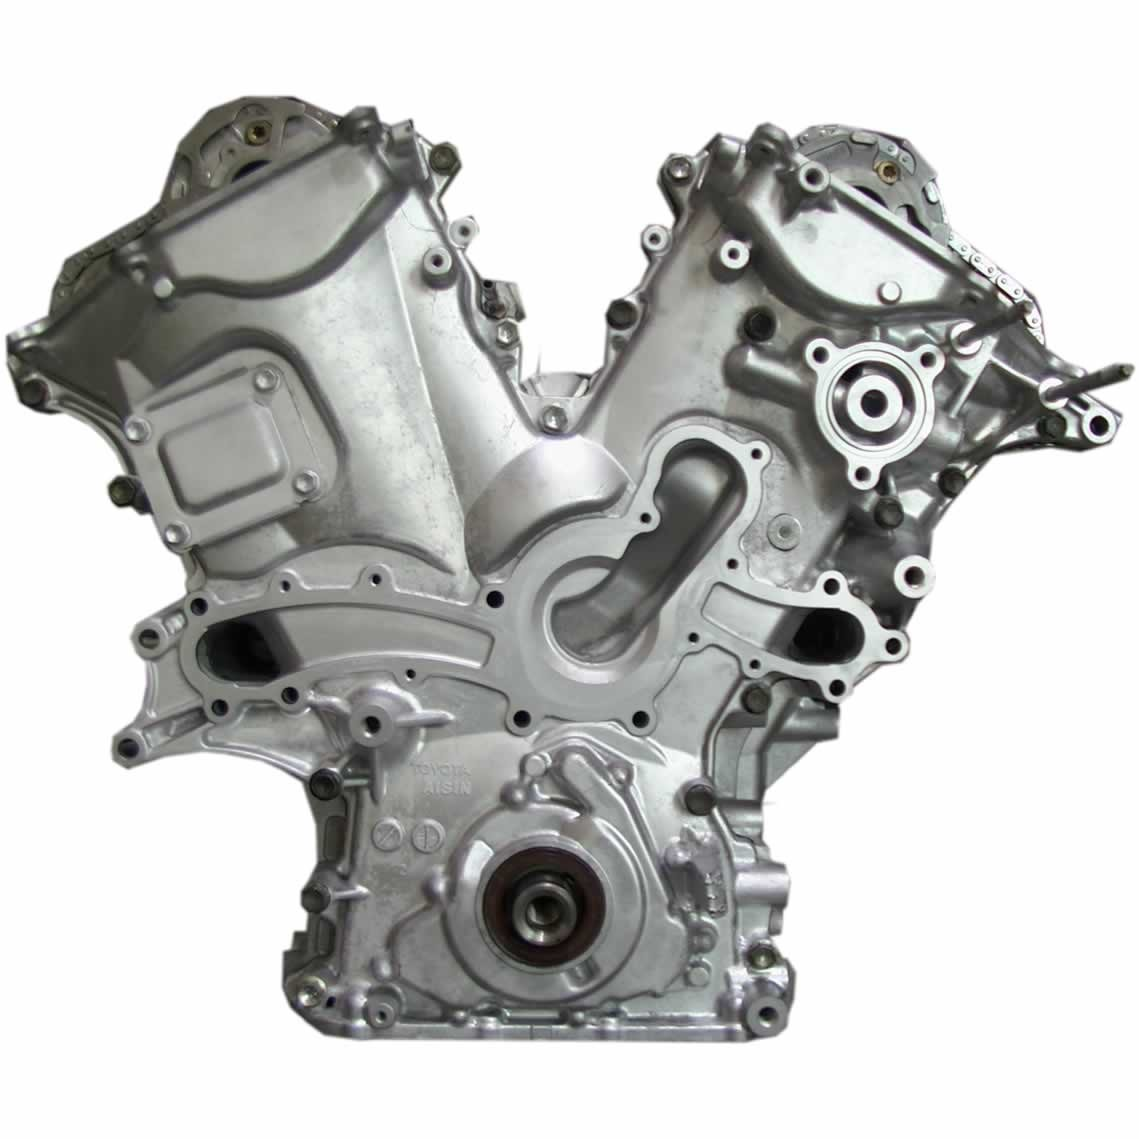 Turbo Kit Tacoma 4 0: Rebuilt 05-2011 Toyota Tacoma 1GR-FE 4.0L Engine